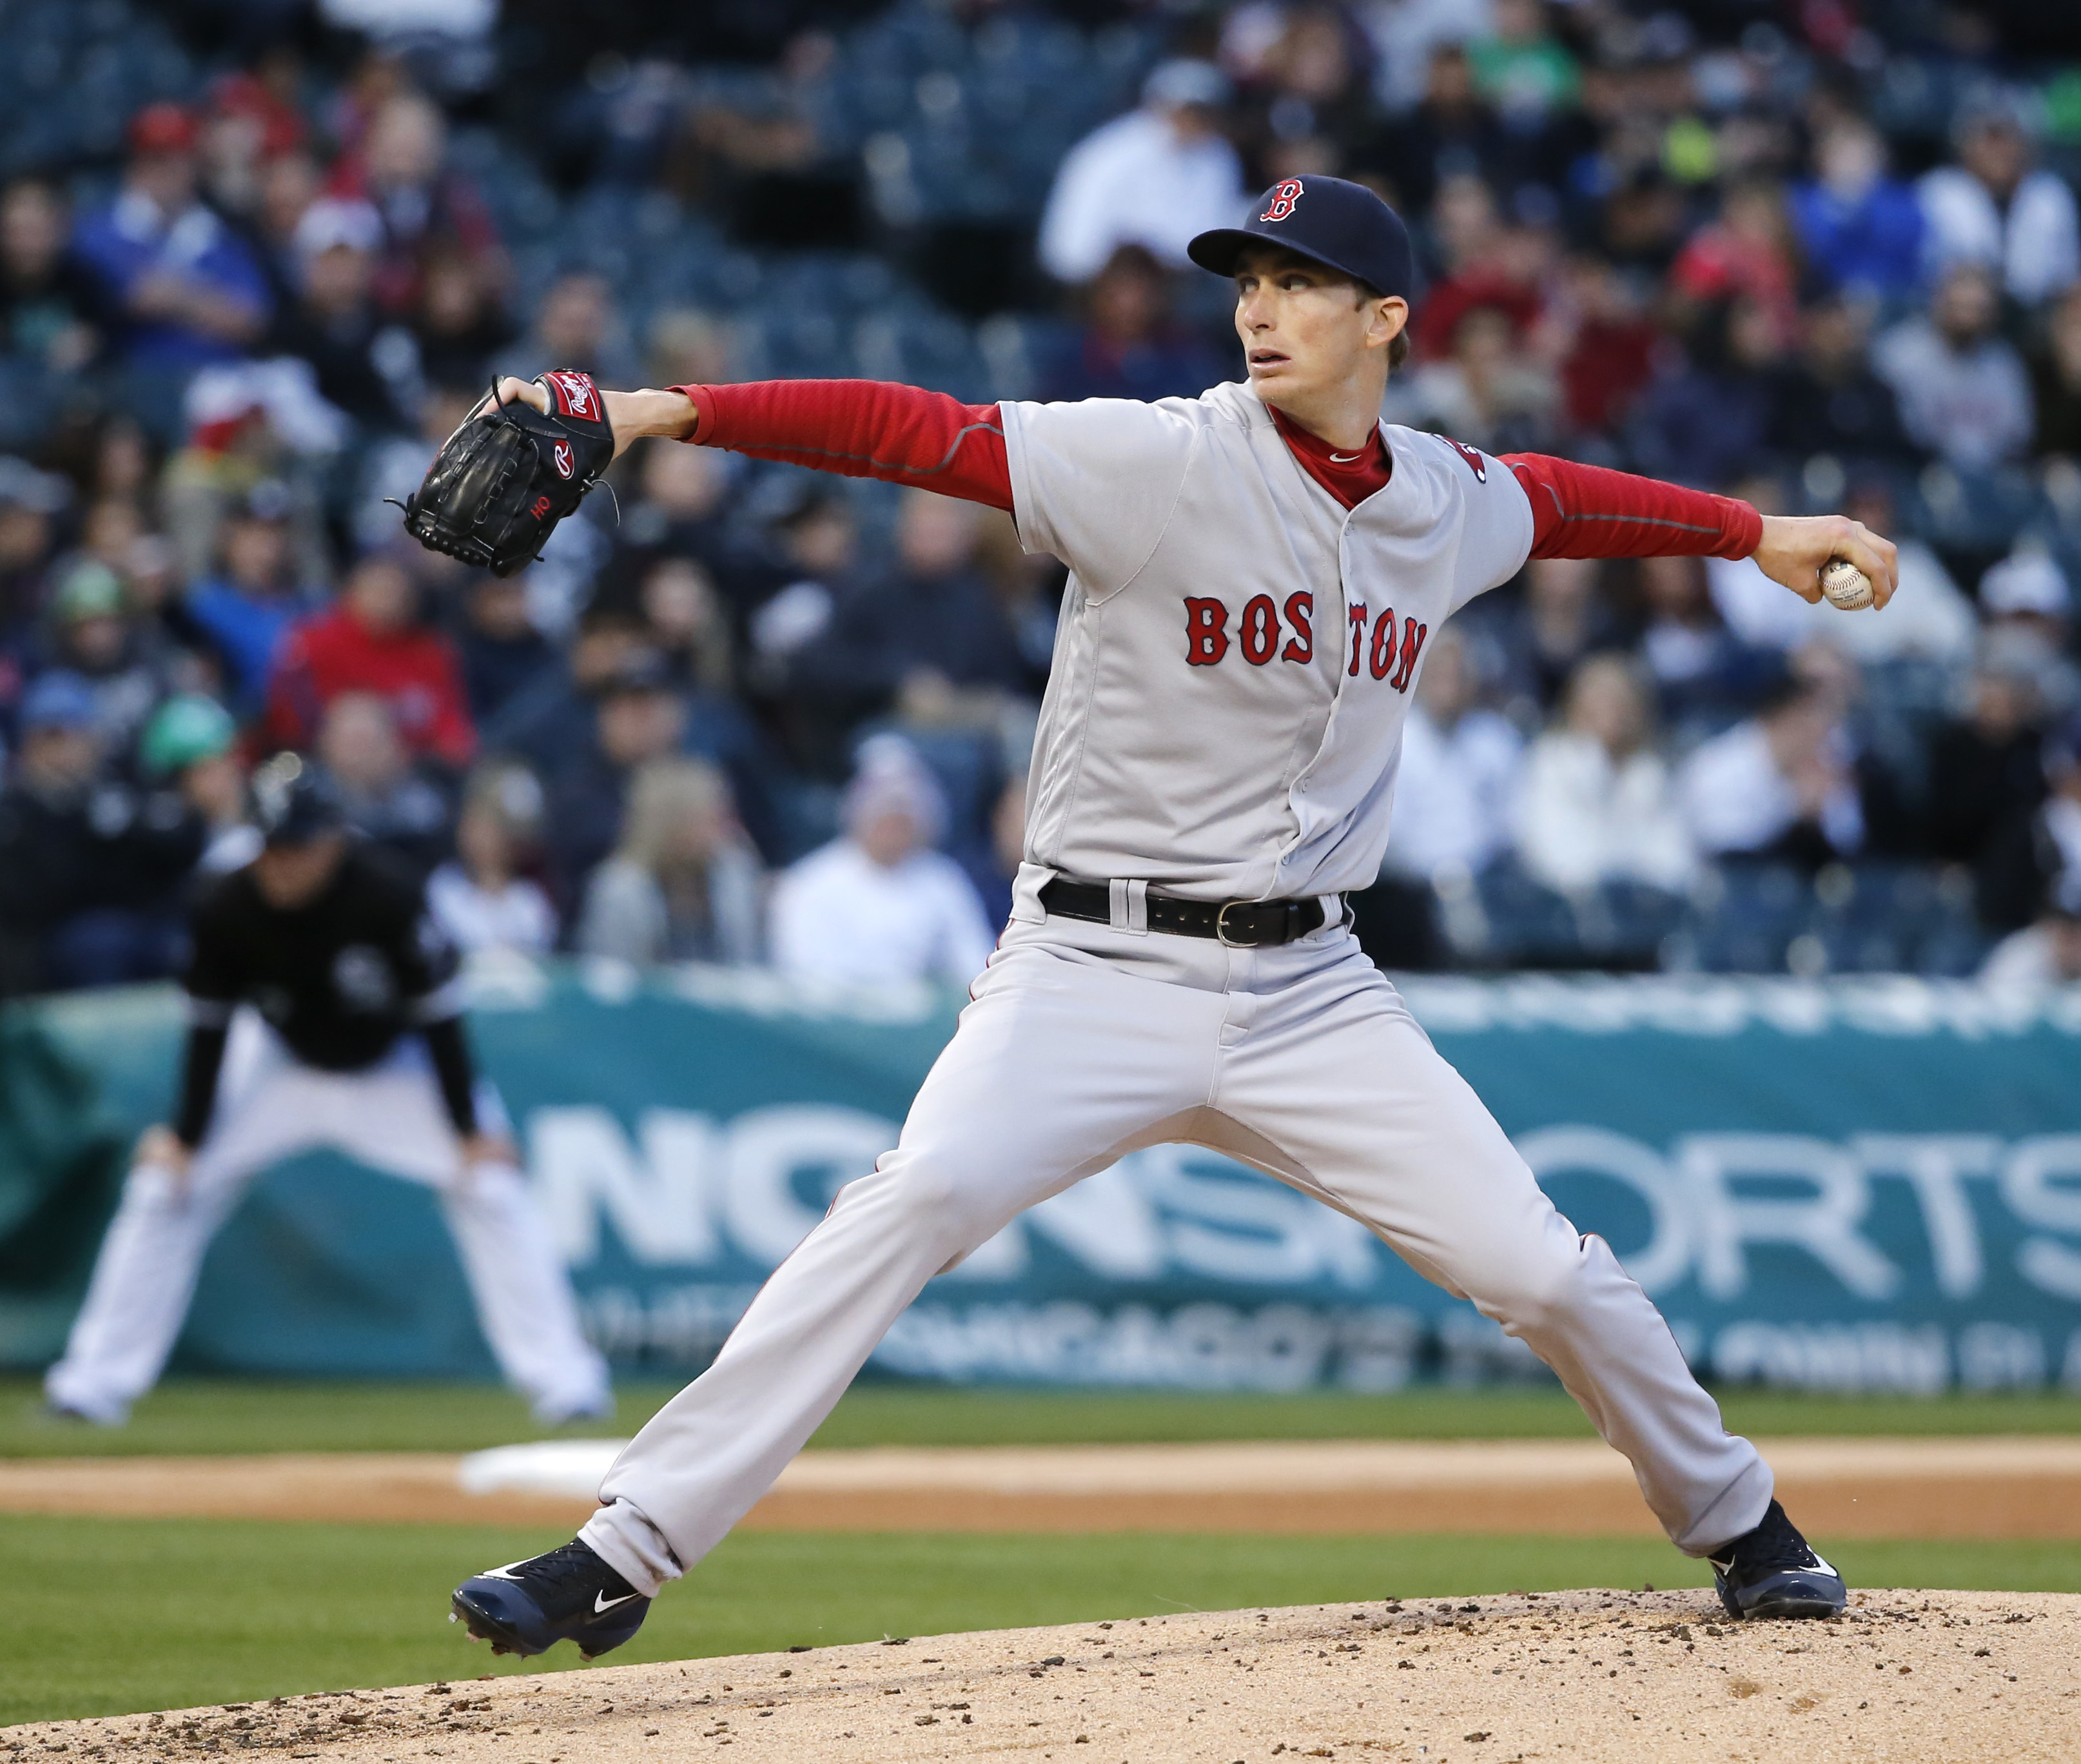 Boston Red Sox starting pitcher Henry Owens delivers during the first inning of a baseball game against the Chicago White Sox, Thursday, May 5, 2016, in Chicago. (AP Photo/Charles Rex Arbogast)